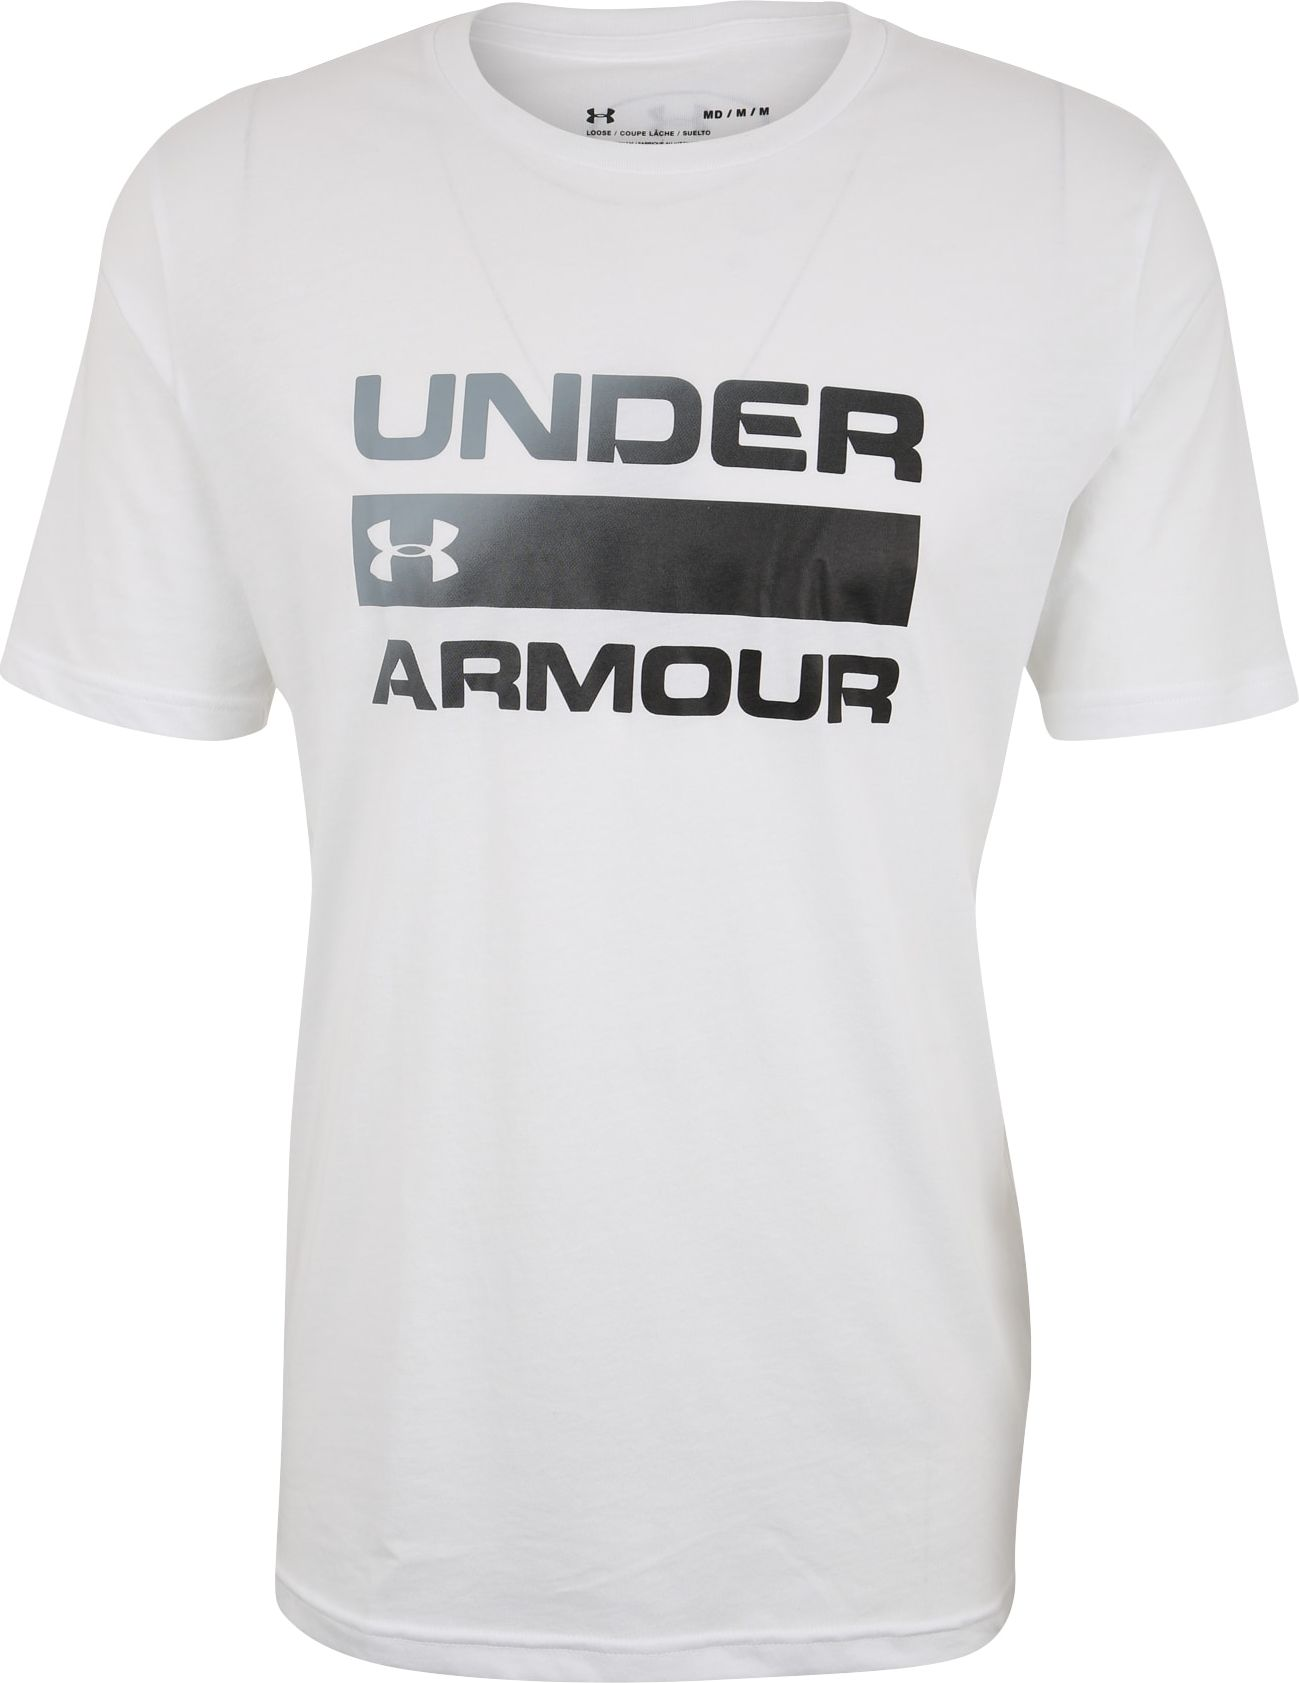 UNDER ARMOUR Funkční tričko TEAM ISSUE bílá Under Armour